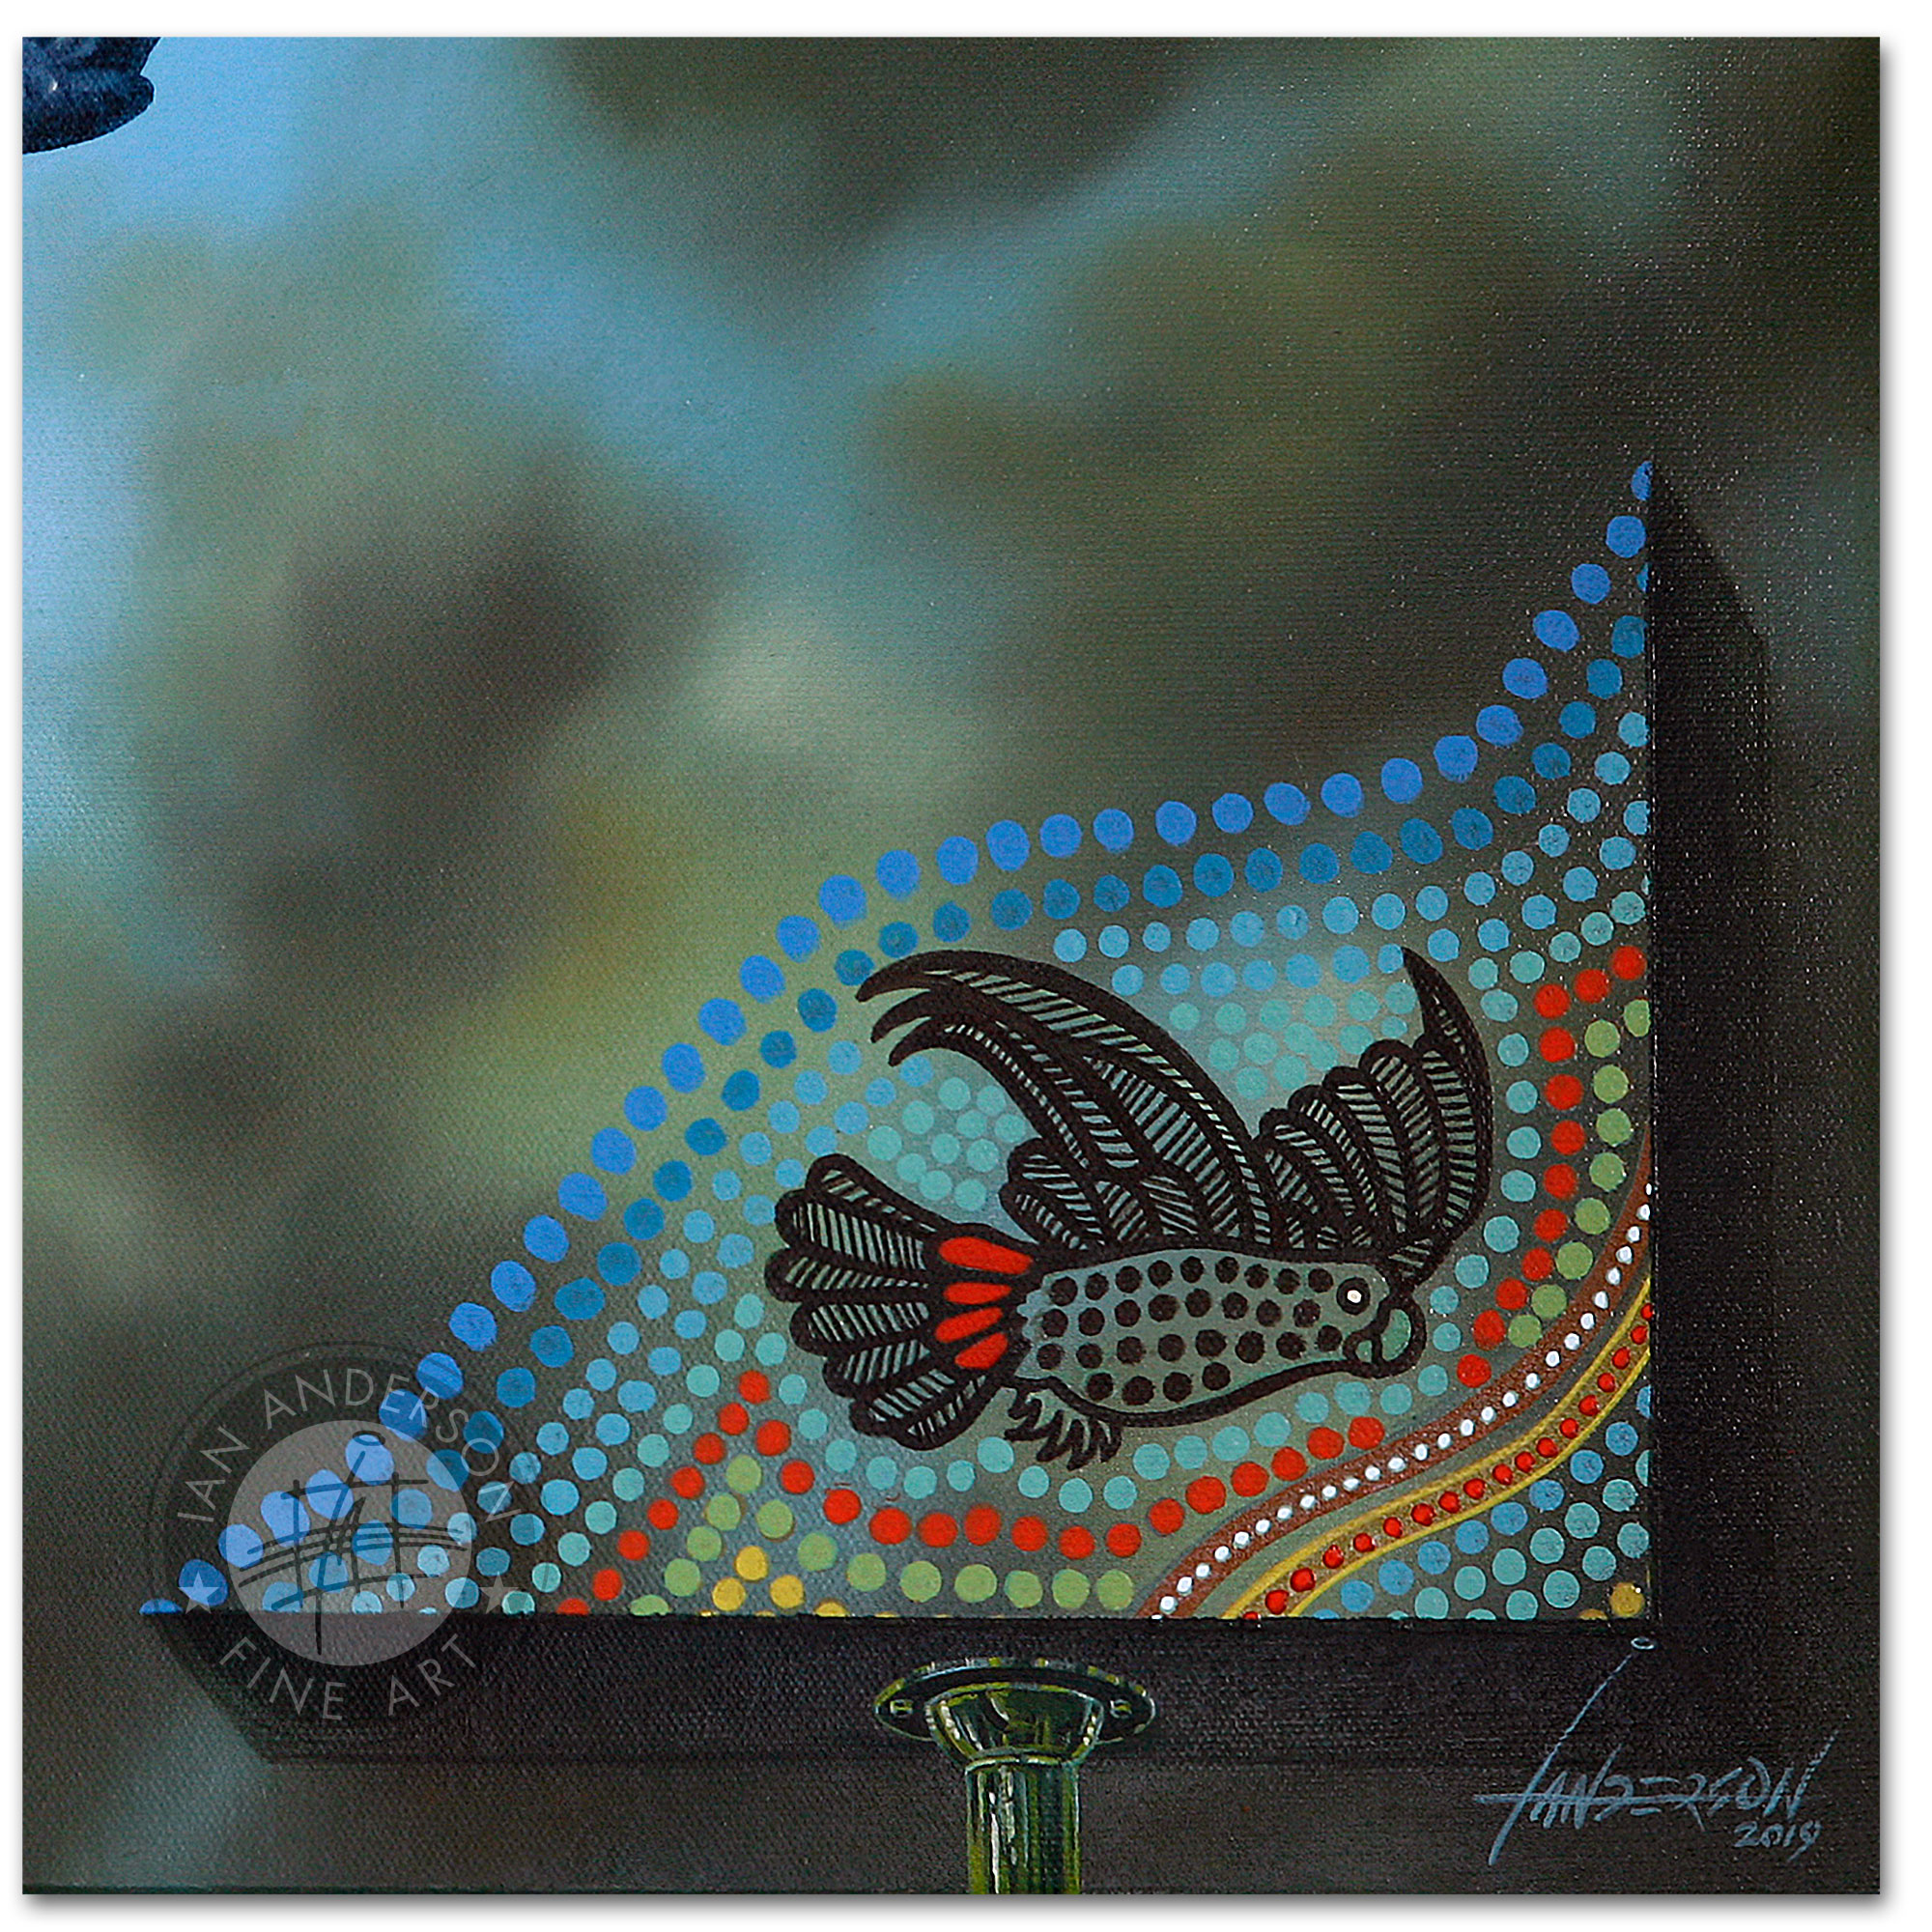 Red Tail Black Cockatoo indigenous close up 3 - Original Oil Painting on gesso primed canvas